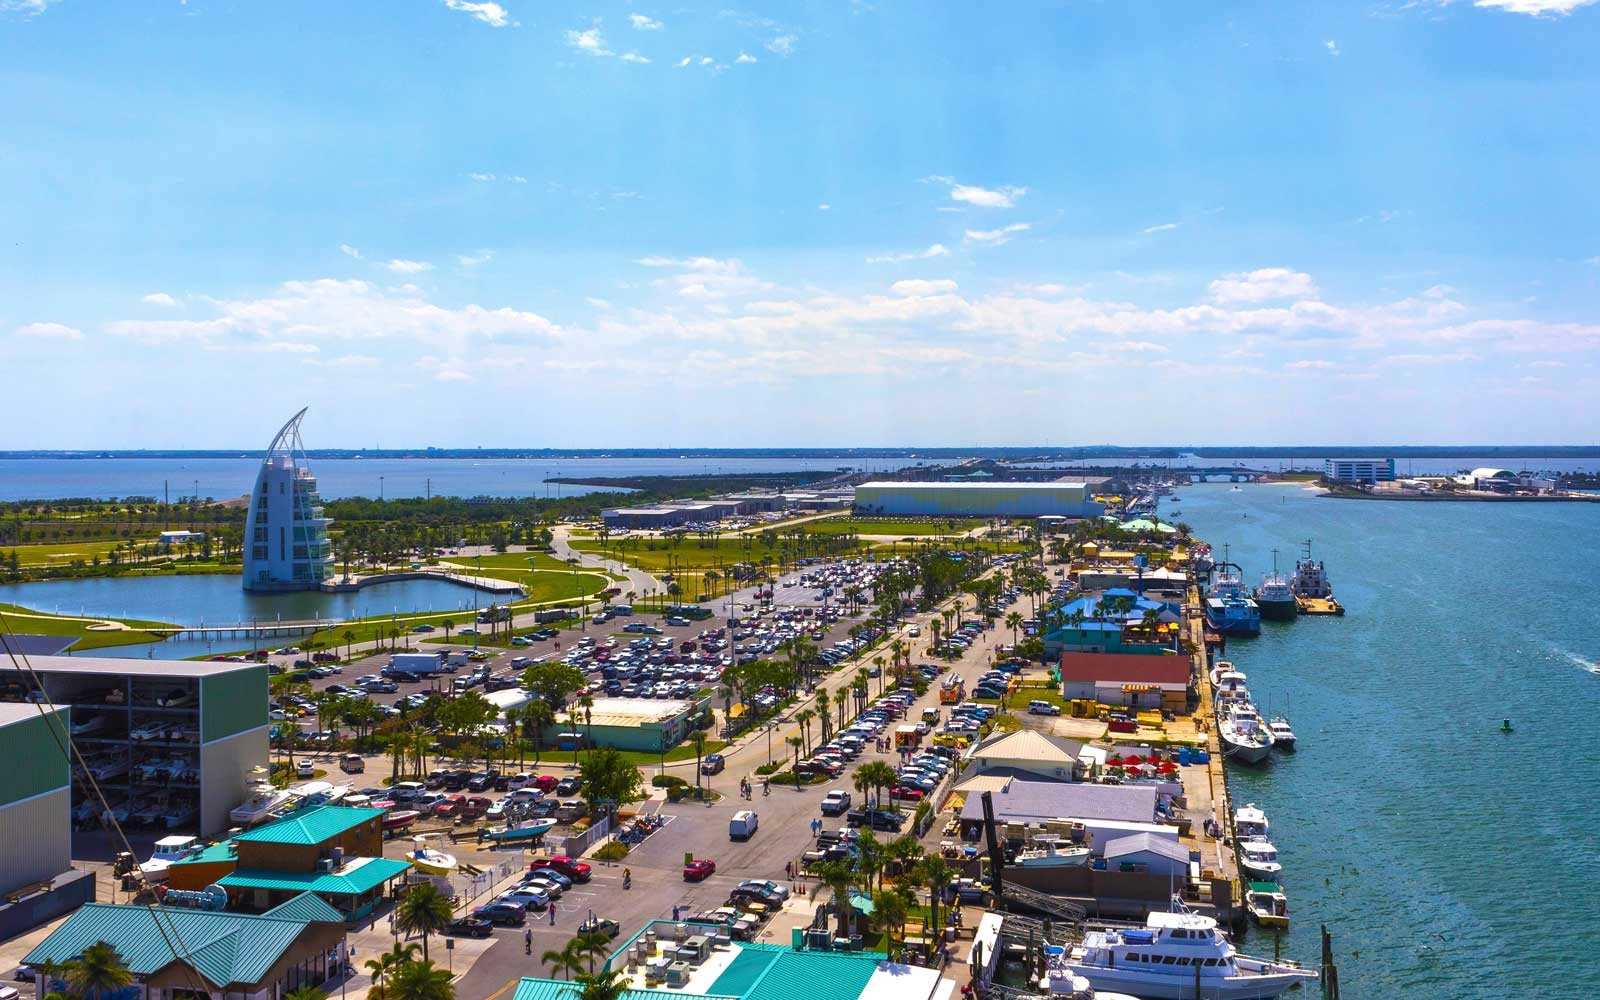 The arial view of port Canaveral